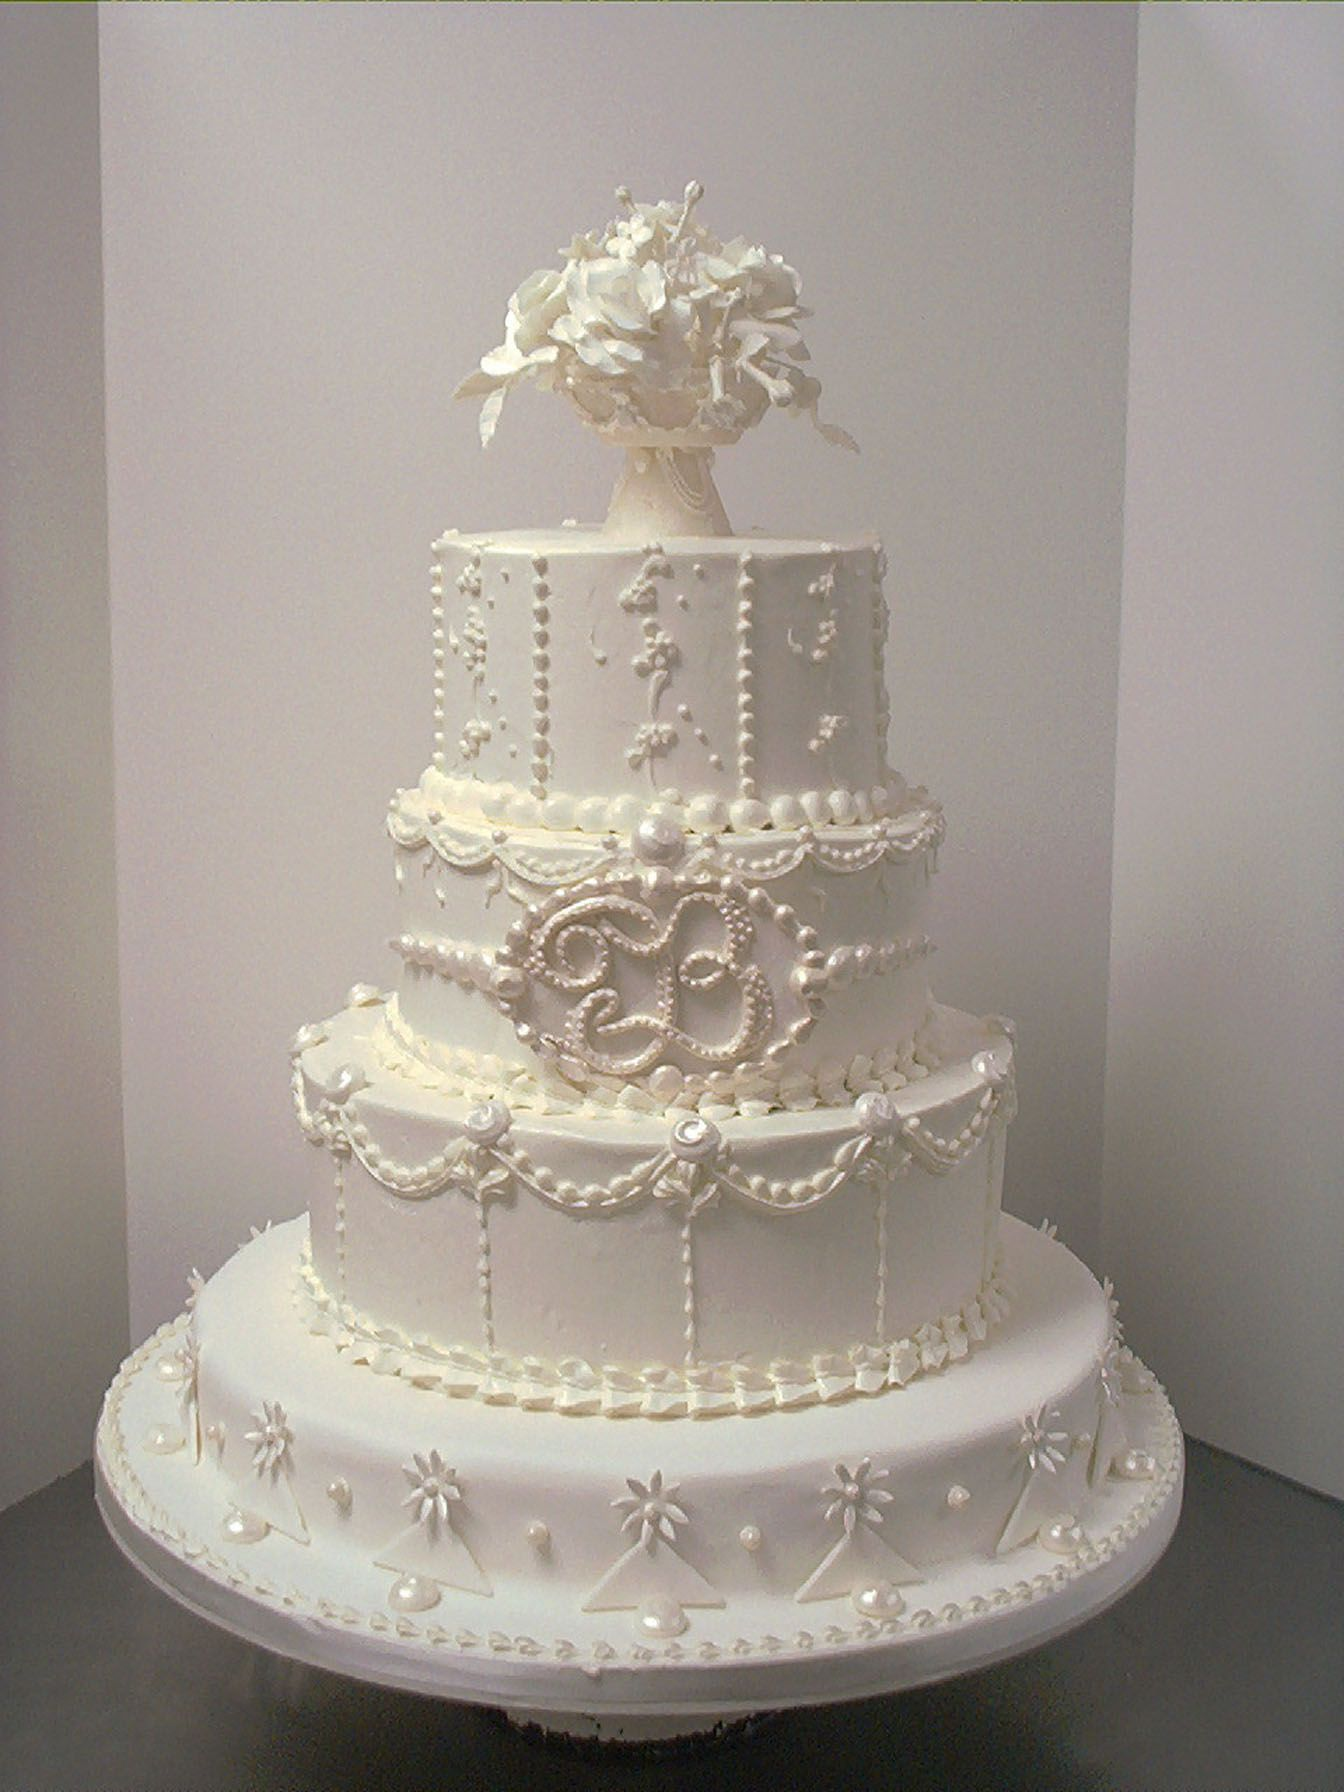 Wedding Cake Design Ideas unique wedding cake designs 1000 Images About Wedding Cakes On Pinterest Wedding Cakes Hexagon Wedding Cake And Wedding Cake Designs